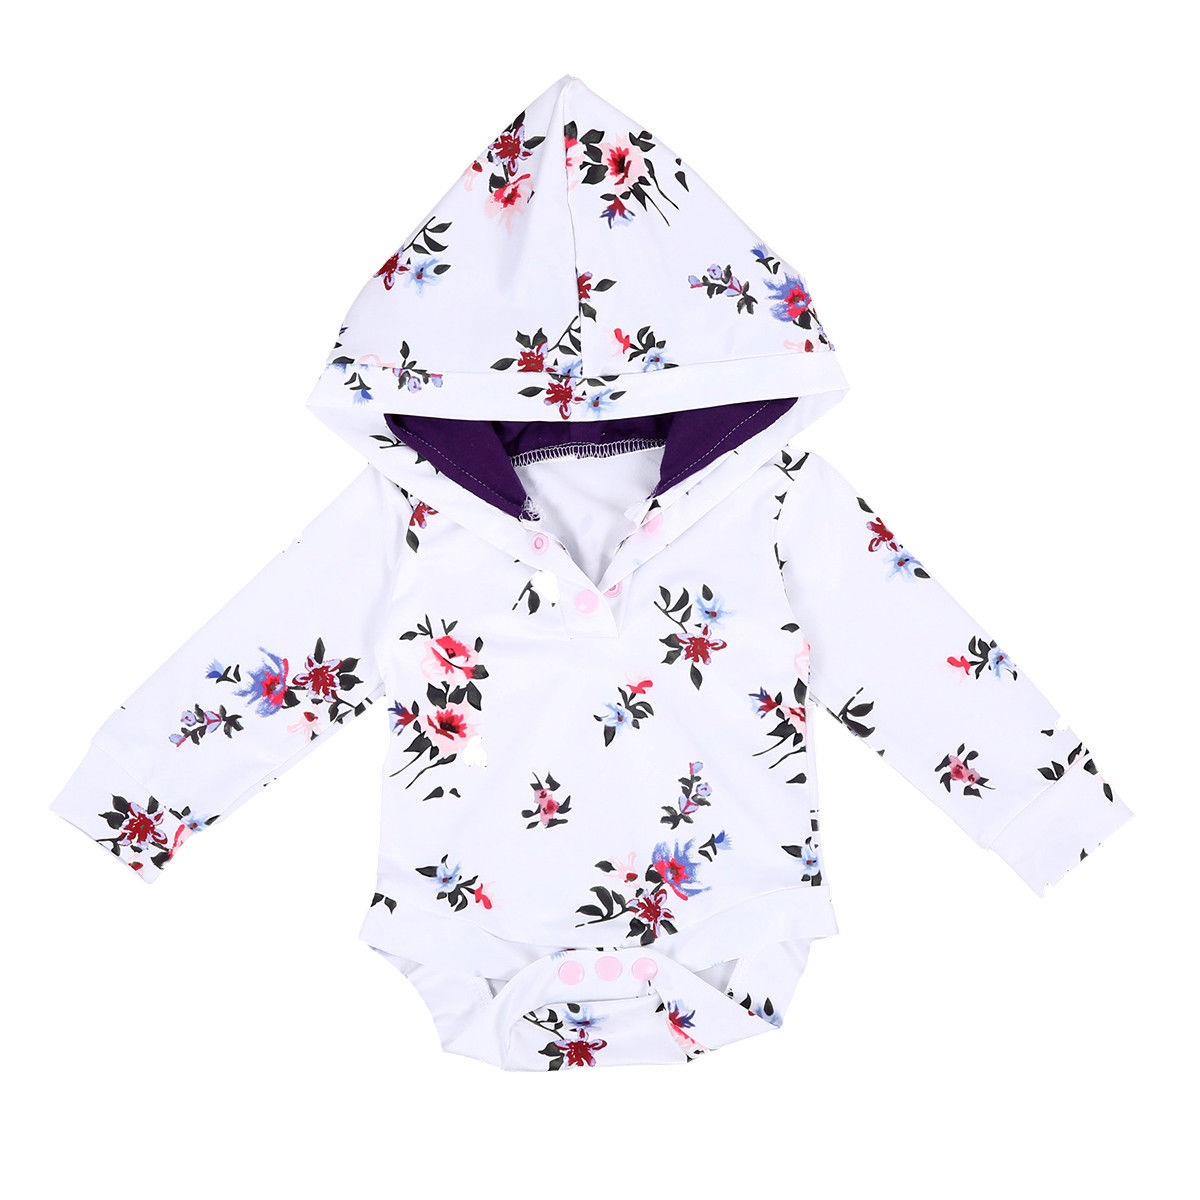 Baby Rompers Long Sleeve Romper Hooded Infant Baby Boy Girl Floral Jumpsuit Outfit Autumn Fashion Baby Clothes newborn infant baby girls boys rompers long sleeve cotton casual romper jumpsuit baby boy girl outfit costume